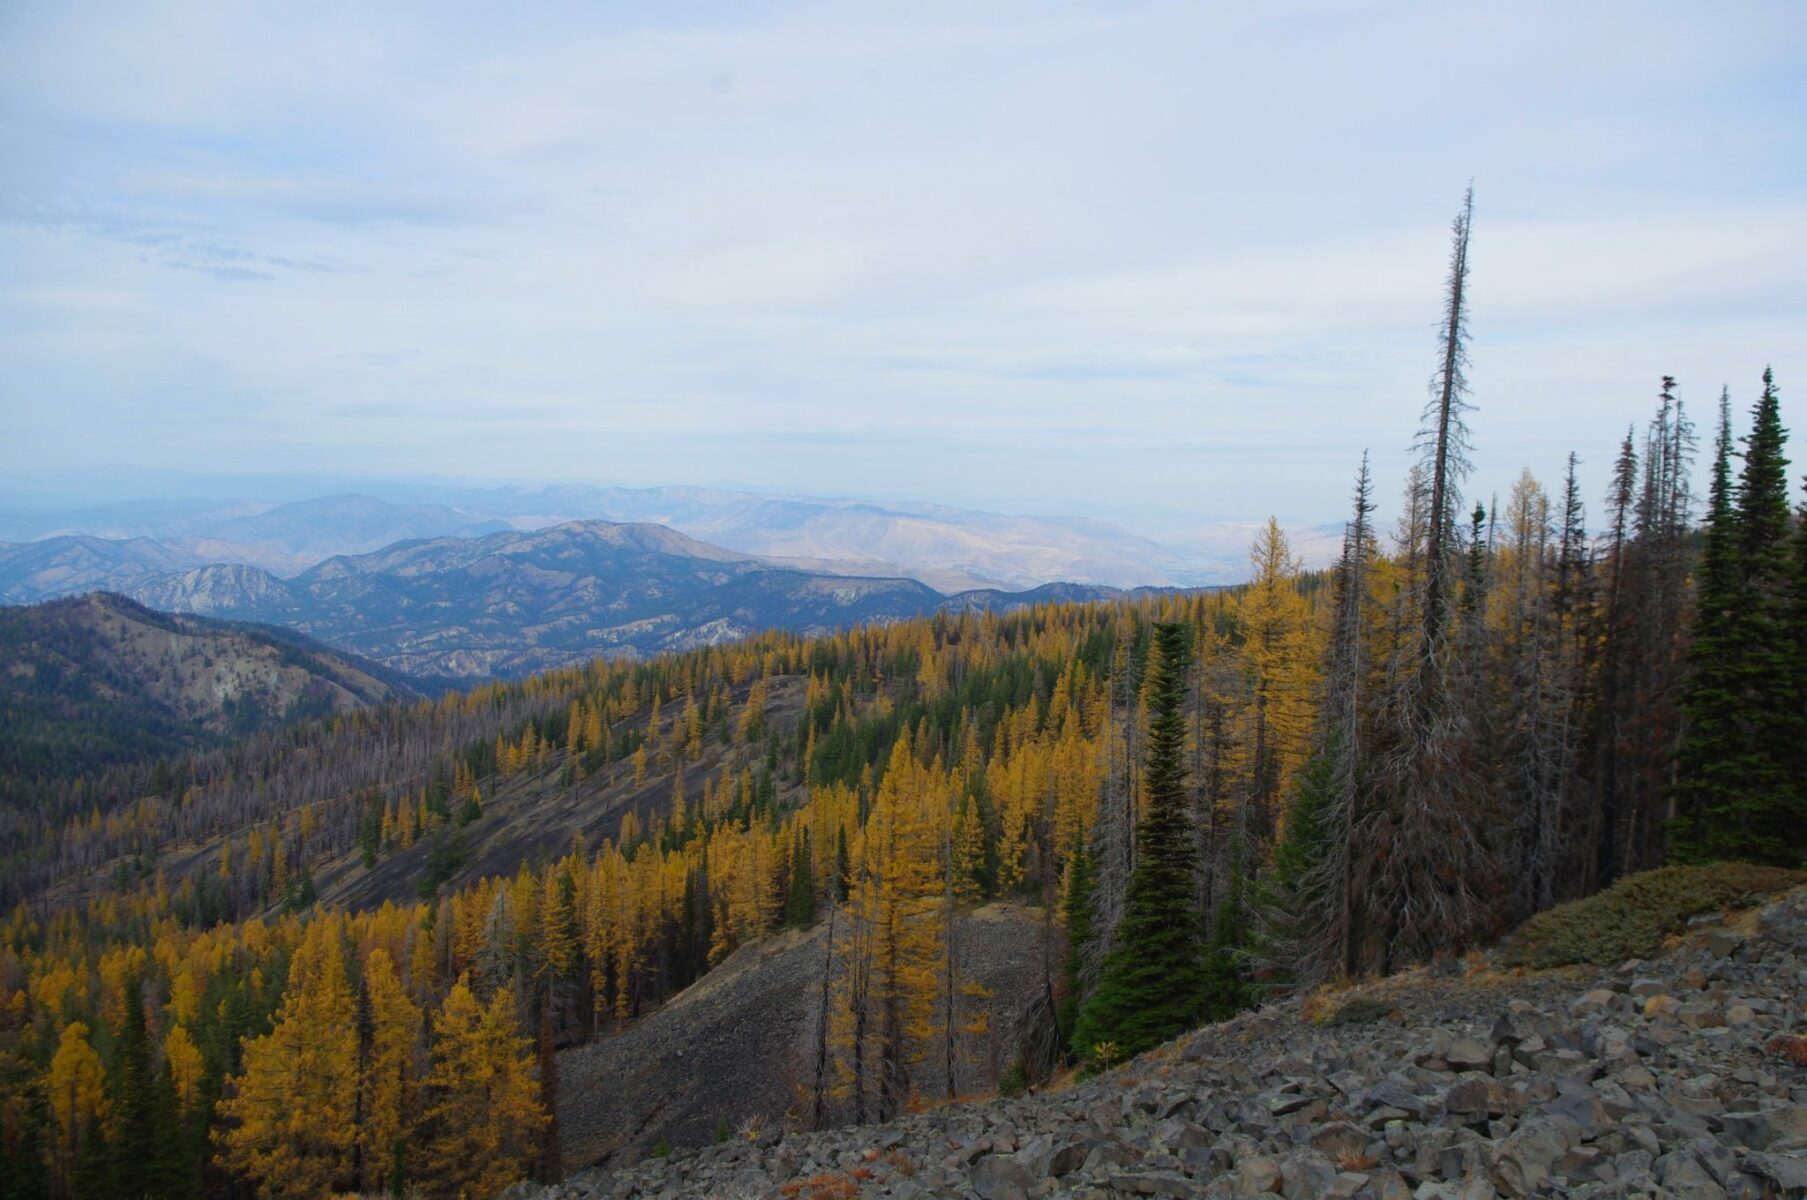 Golden larches mixed with evergreen trees cover a hillside. In the distance are mountains.